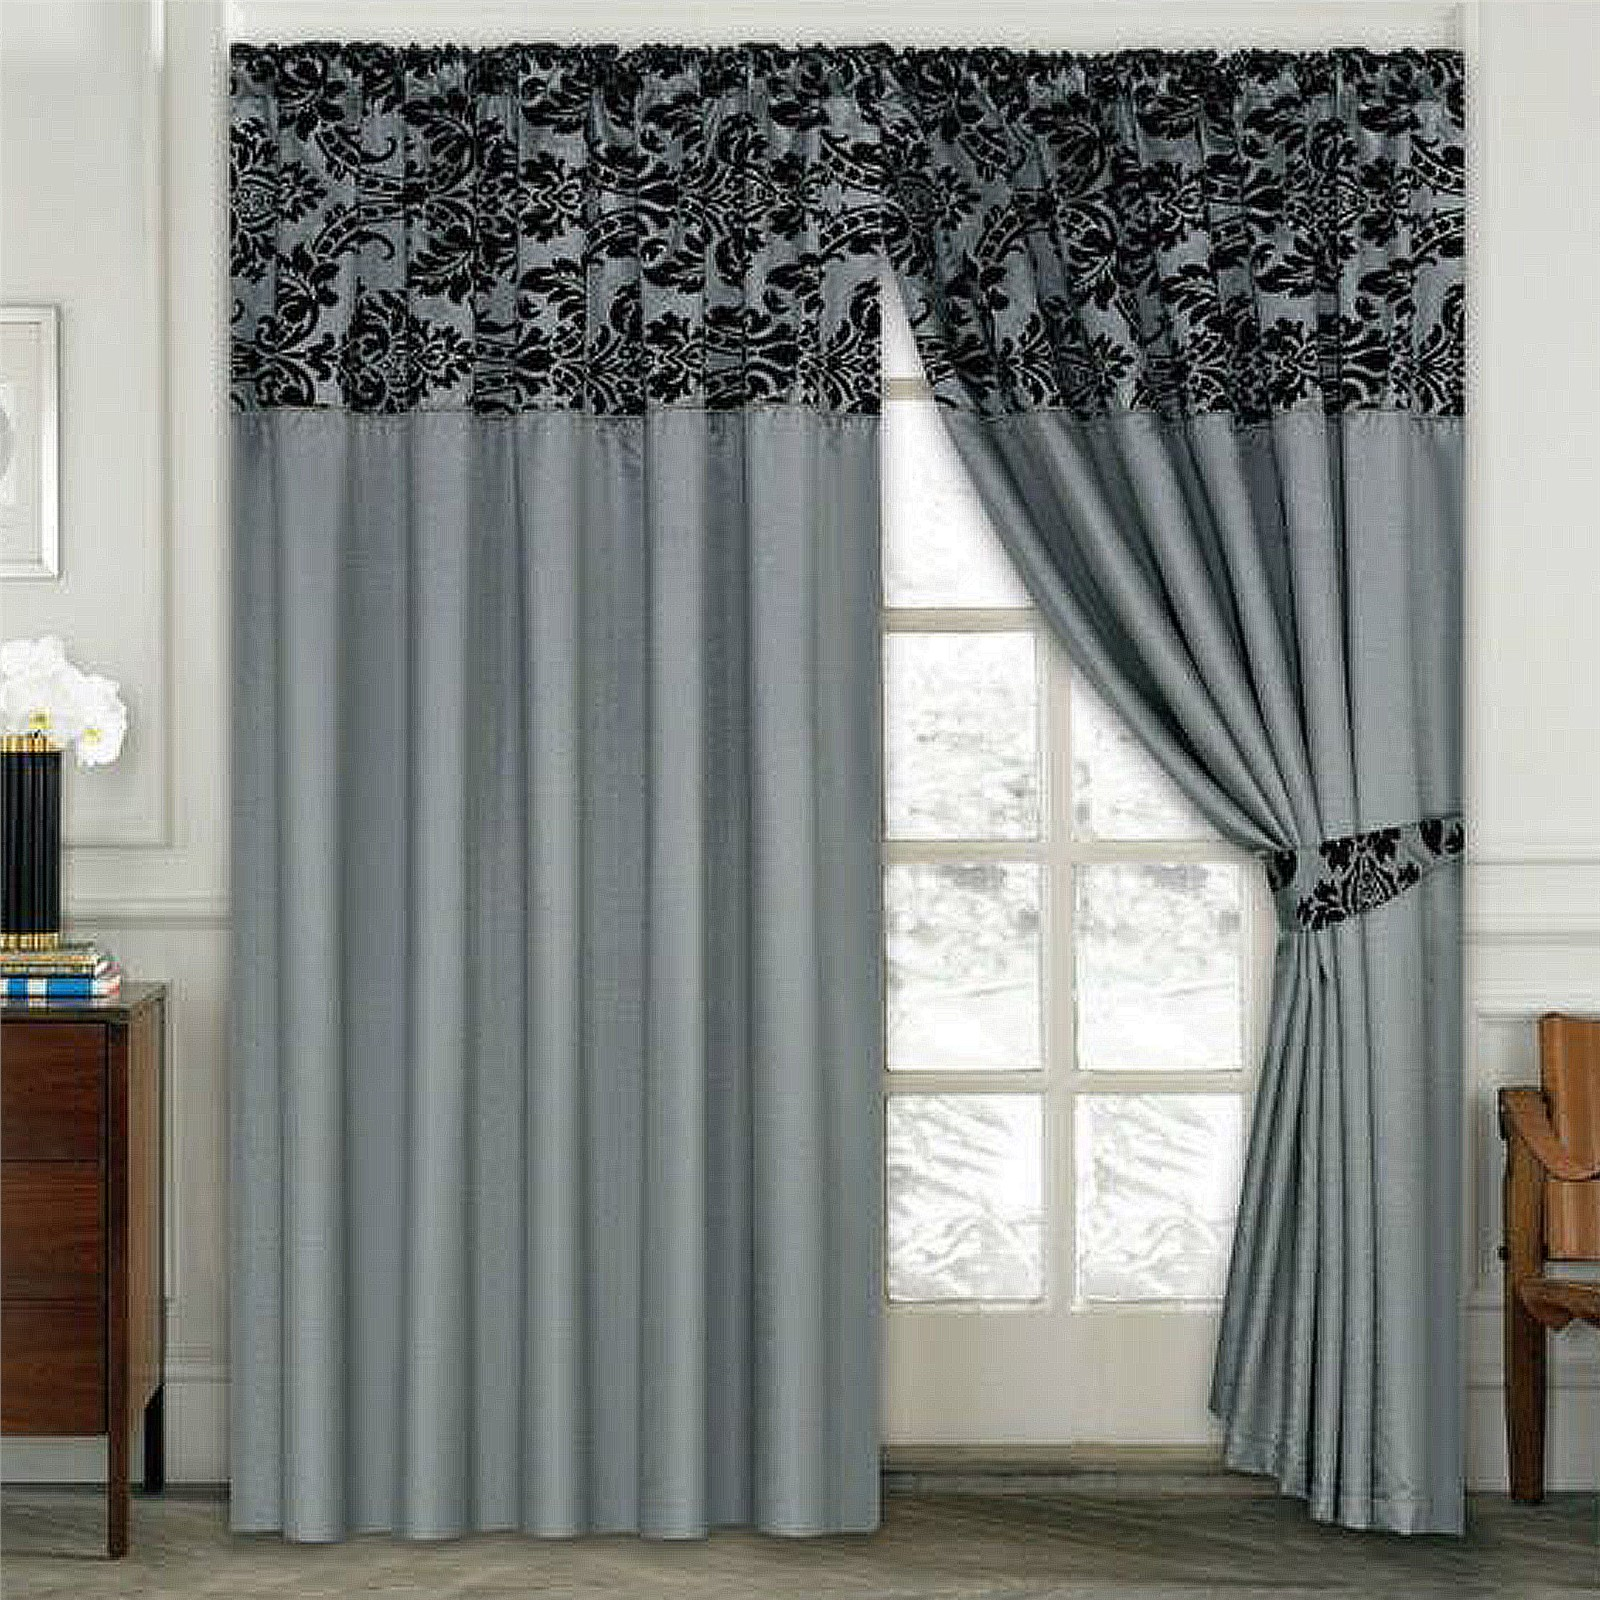 Pictures Of Sheer Curtains Shower In Bathrooms Swag Window Blinds And